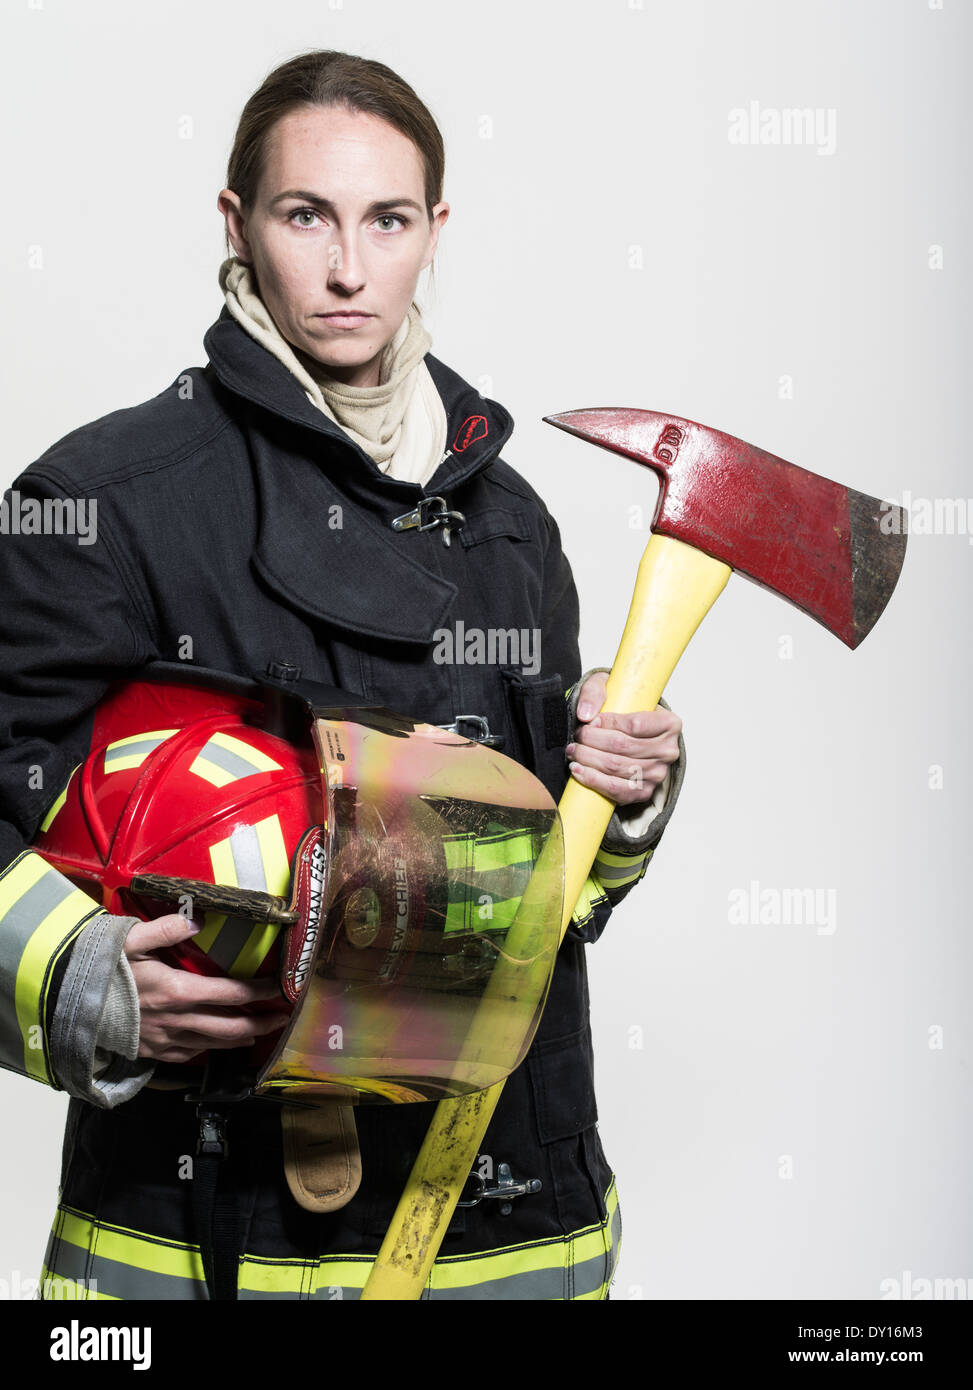 Female firefighter in structural firefighting uniform with breathing apparatus and axe Stock Photo